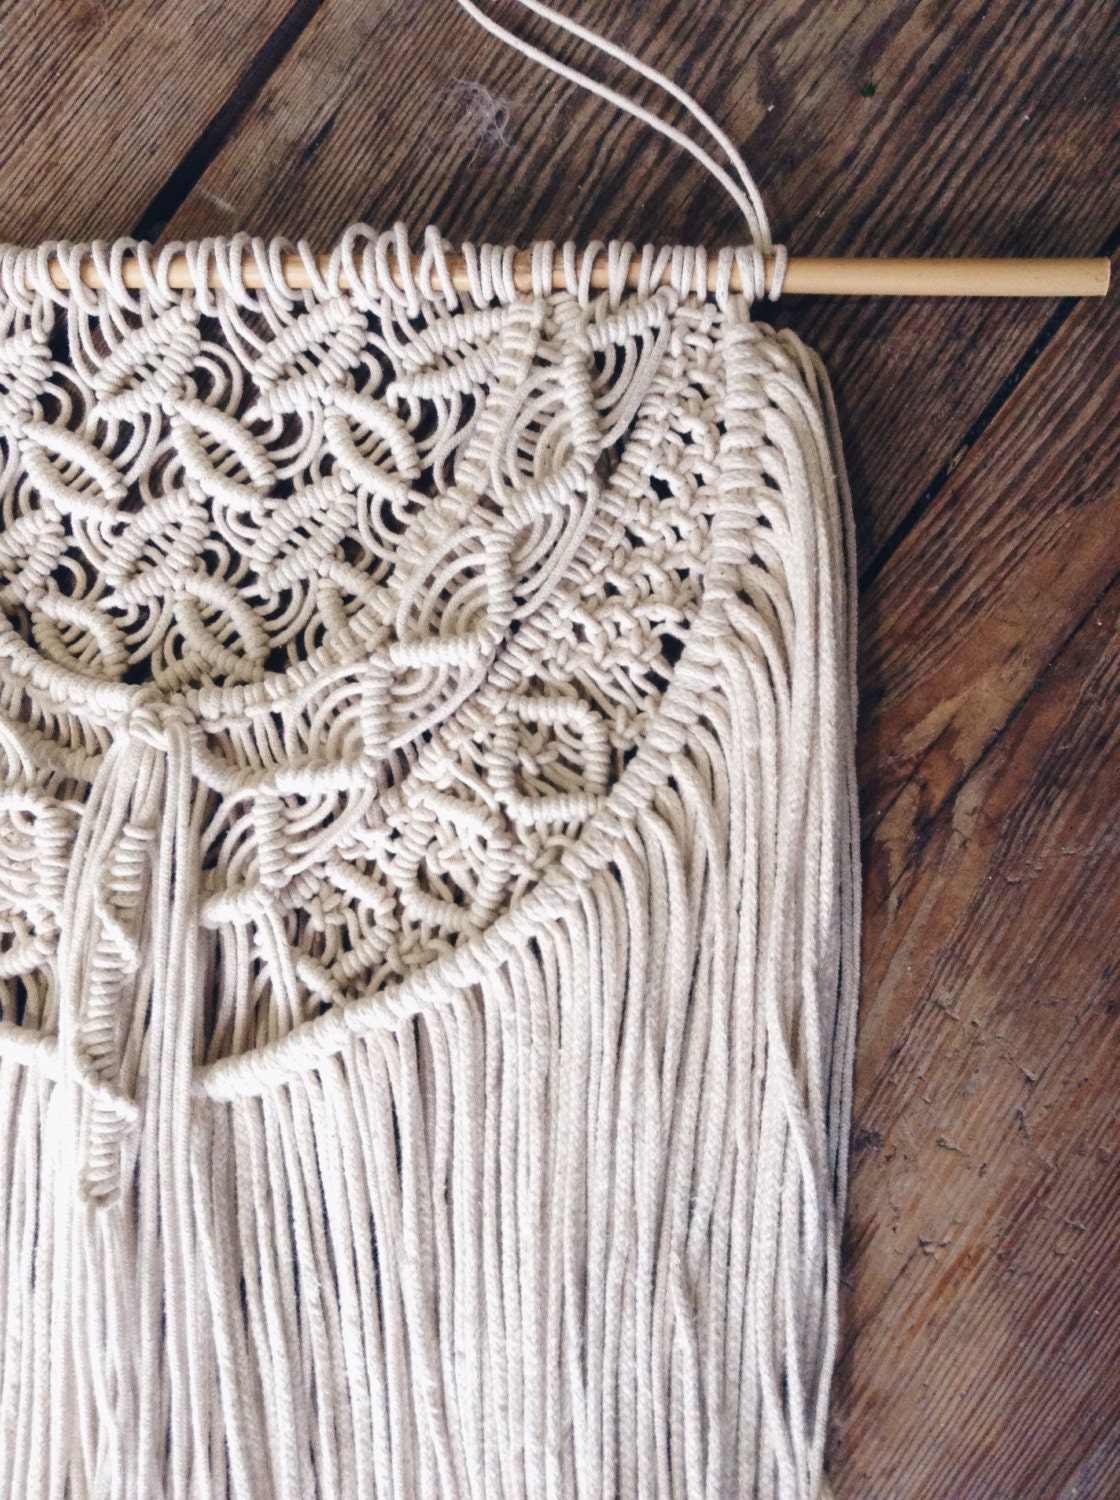 Woven Wall Art Hanging Tapestry